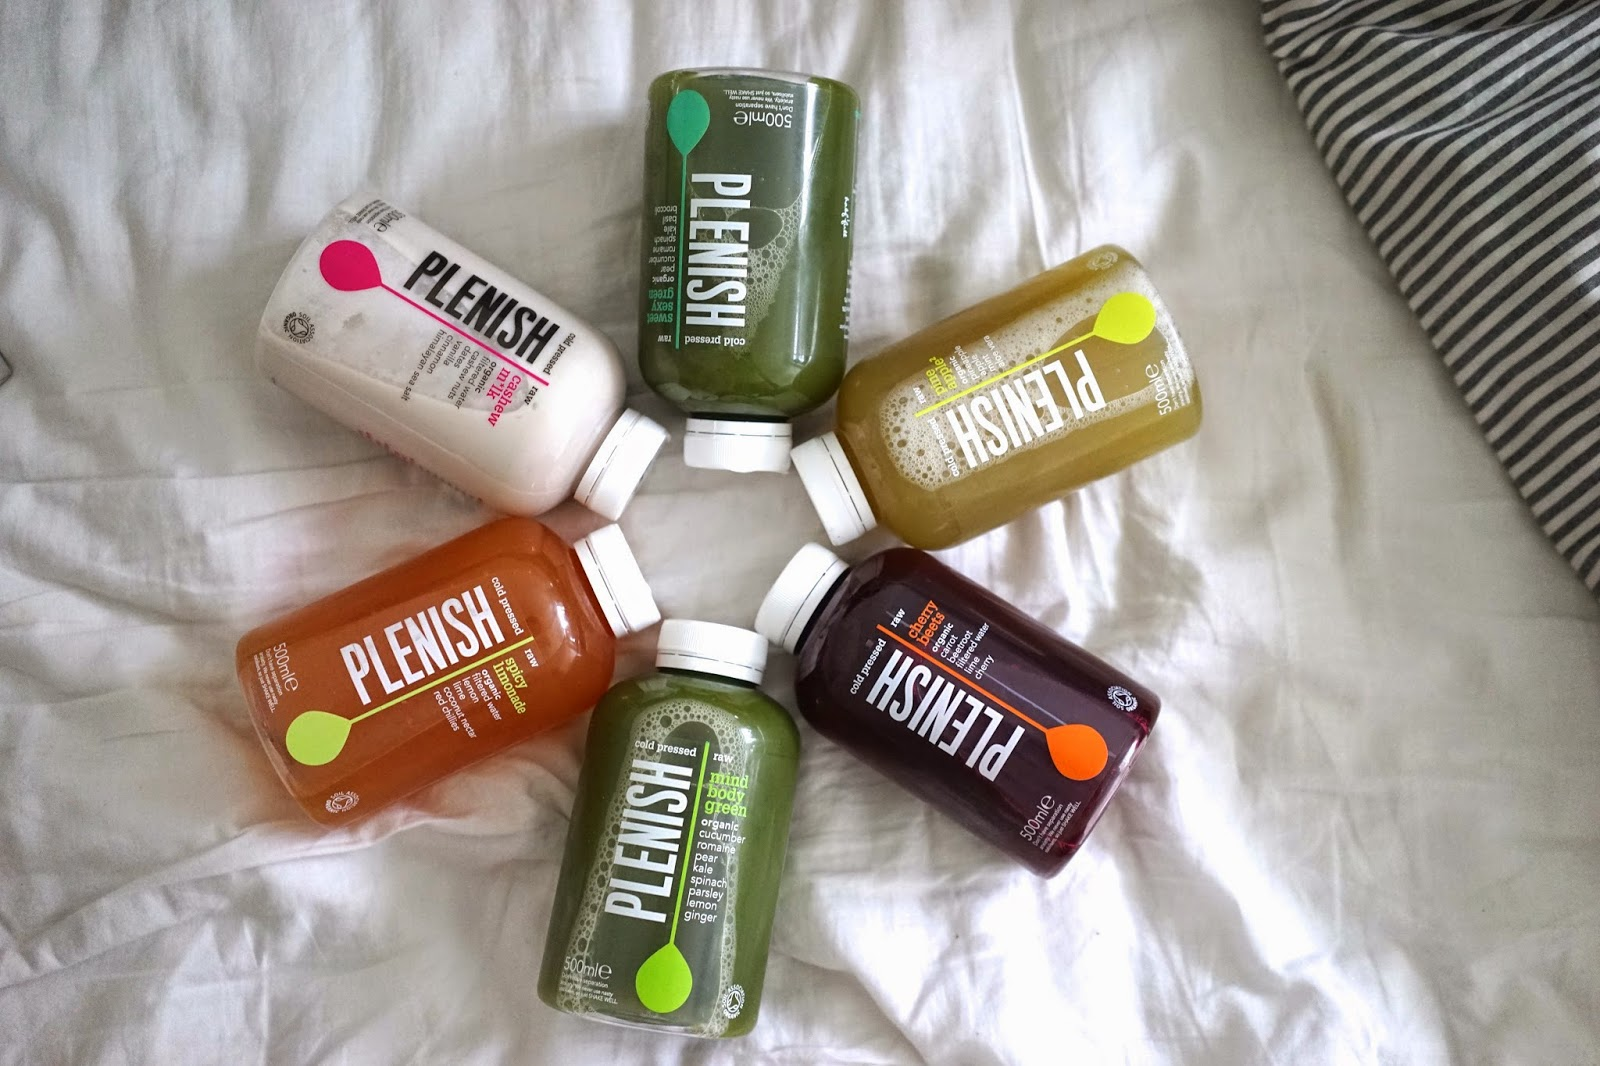 Plenish juices